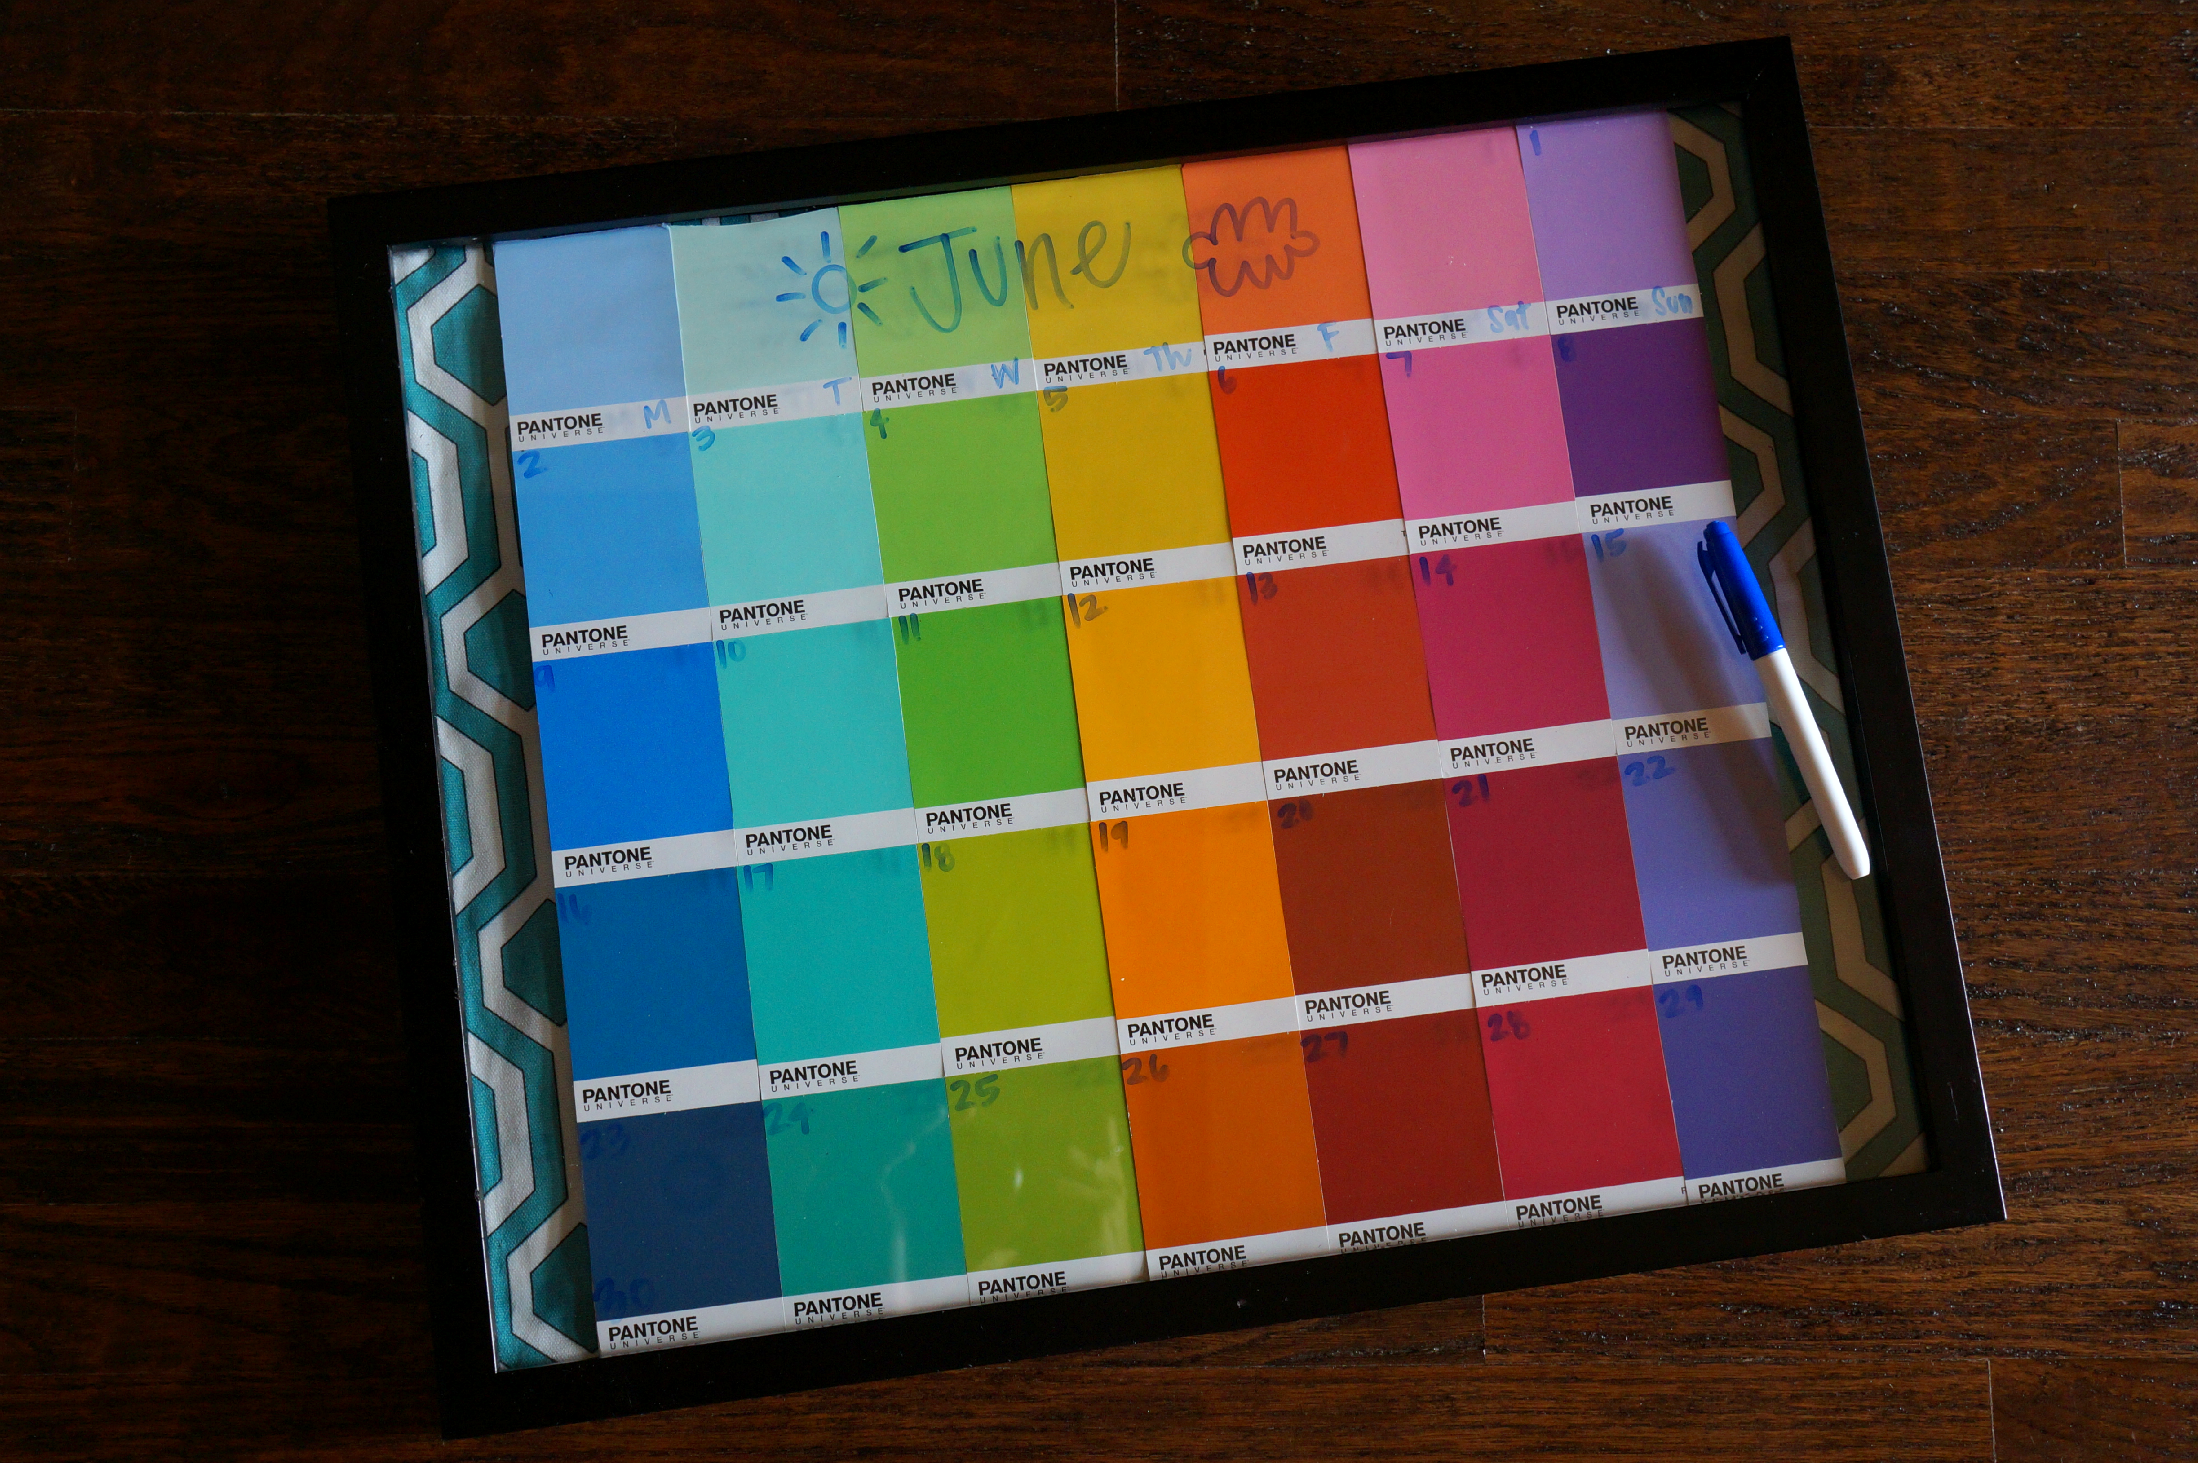 With free paint chips and an inexpensive poster frame, you could create your own custom dry erase calendar for less than $ I'm so excited to have this big, .